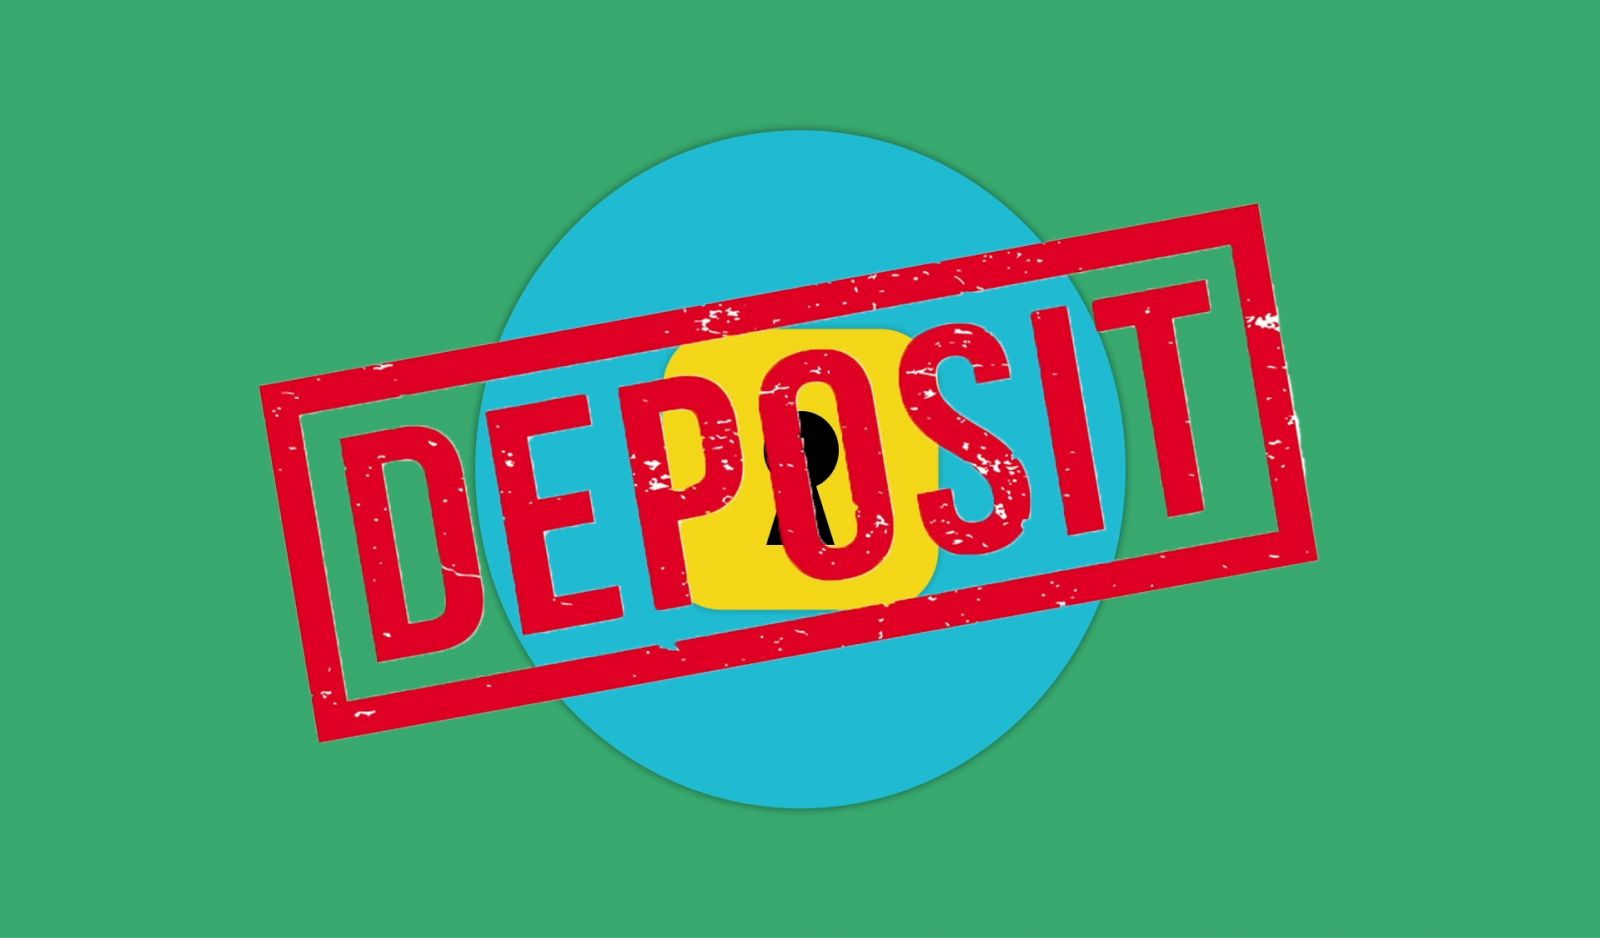 deposit graphic on green background